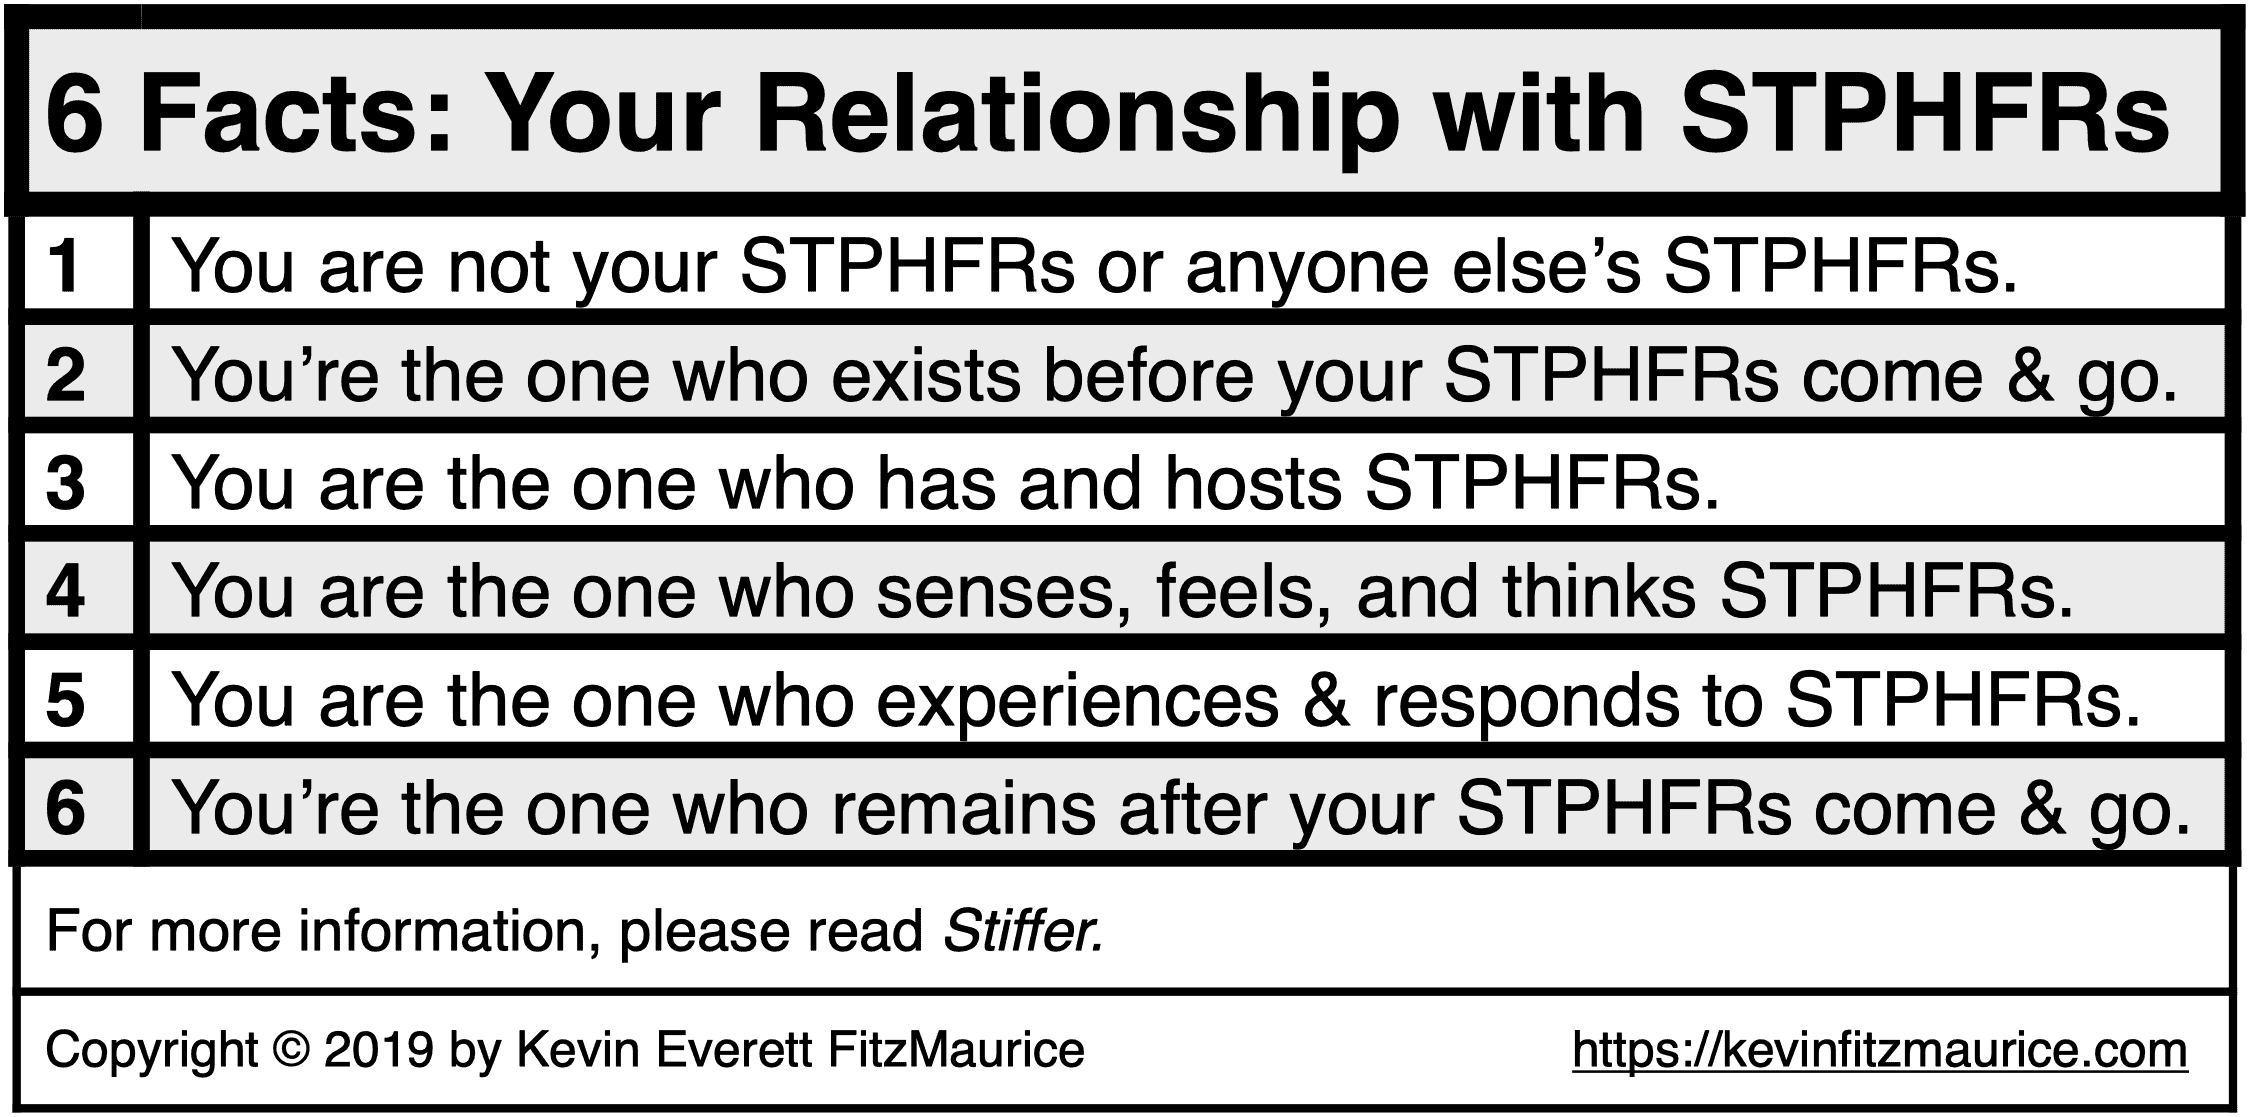 6 Facts About Your Relationship with Your STPHFRs